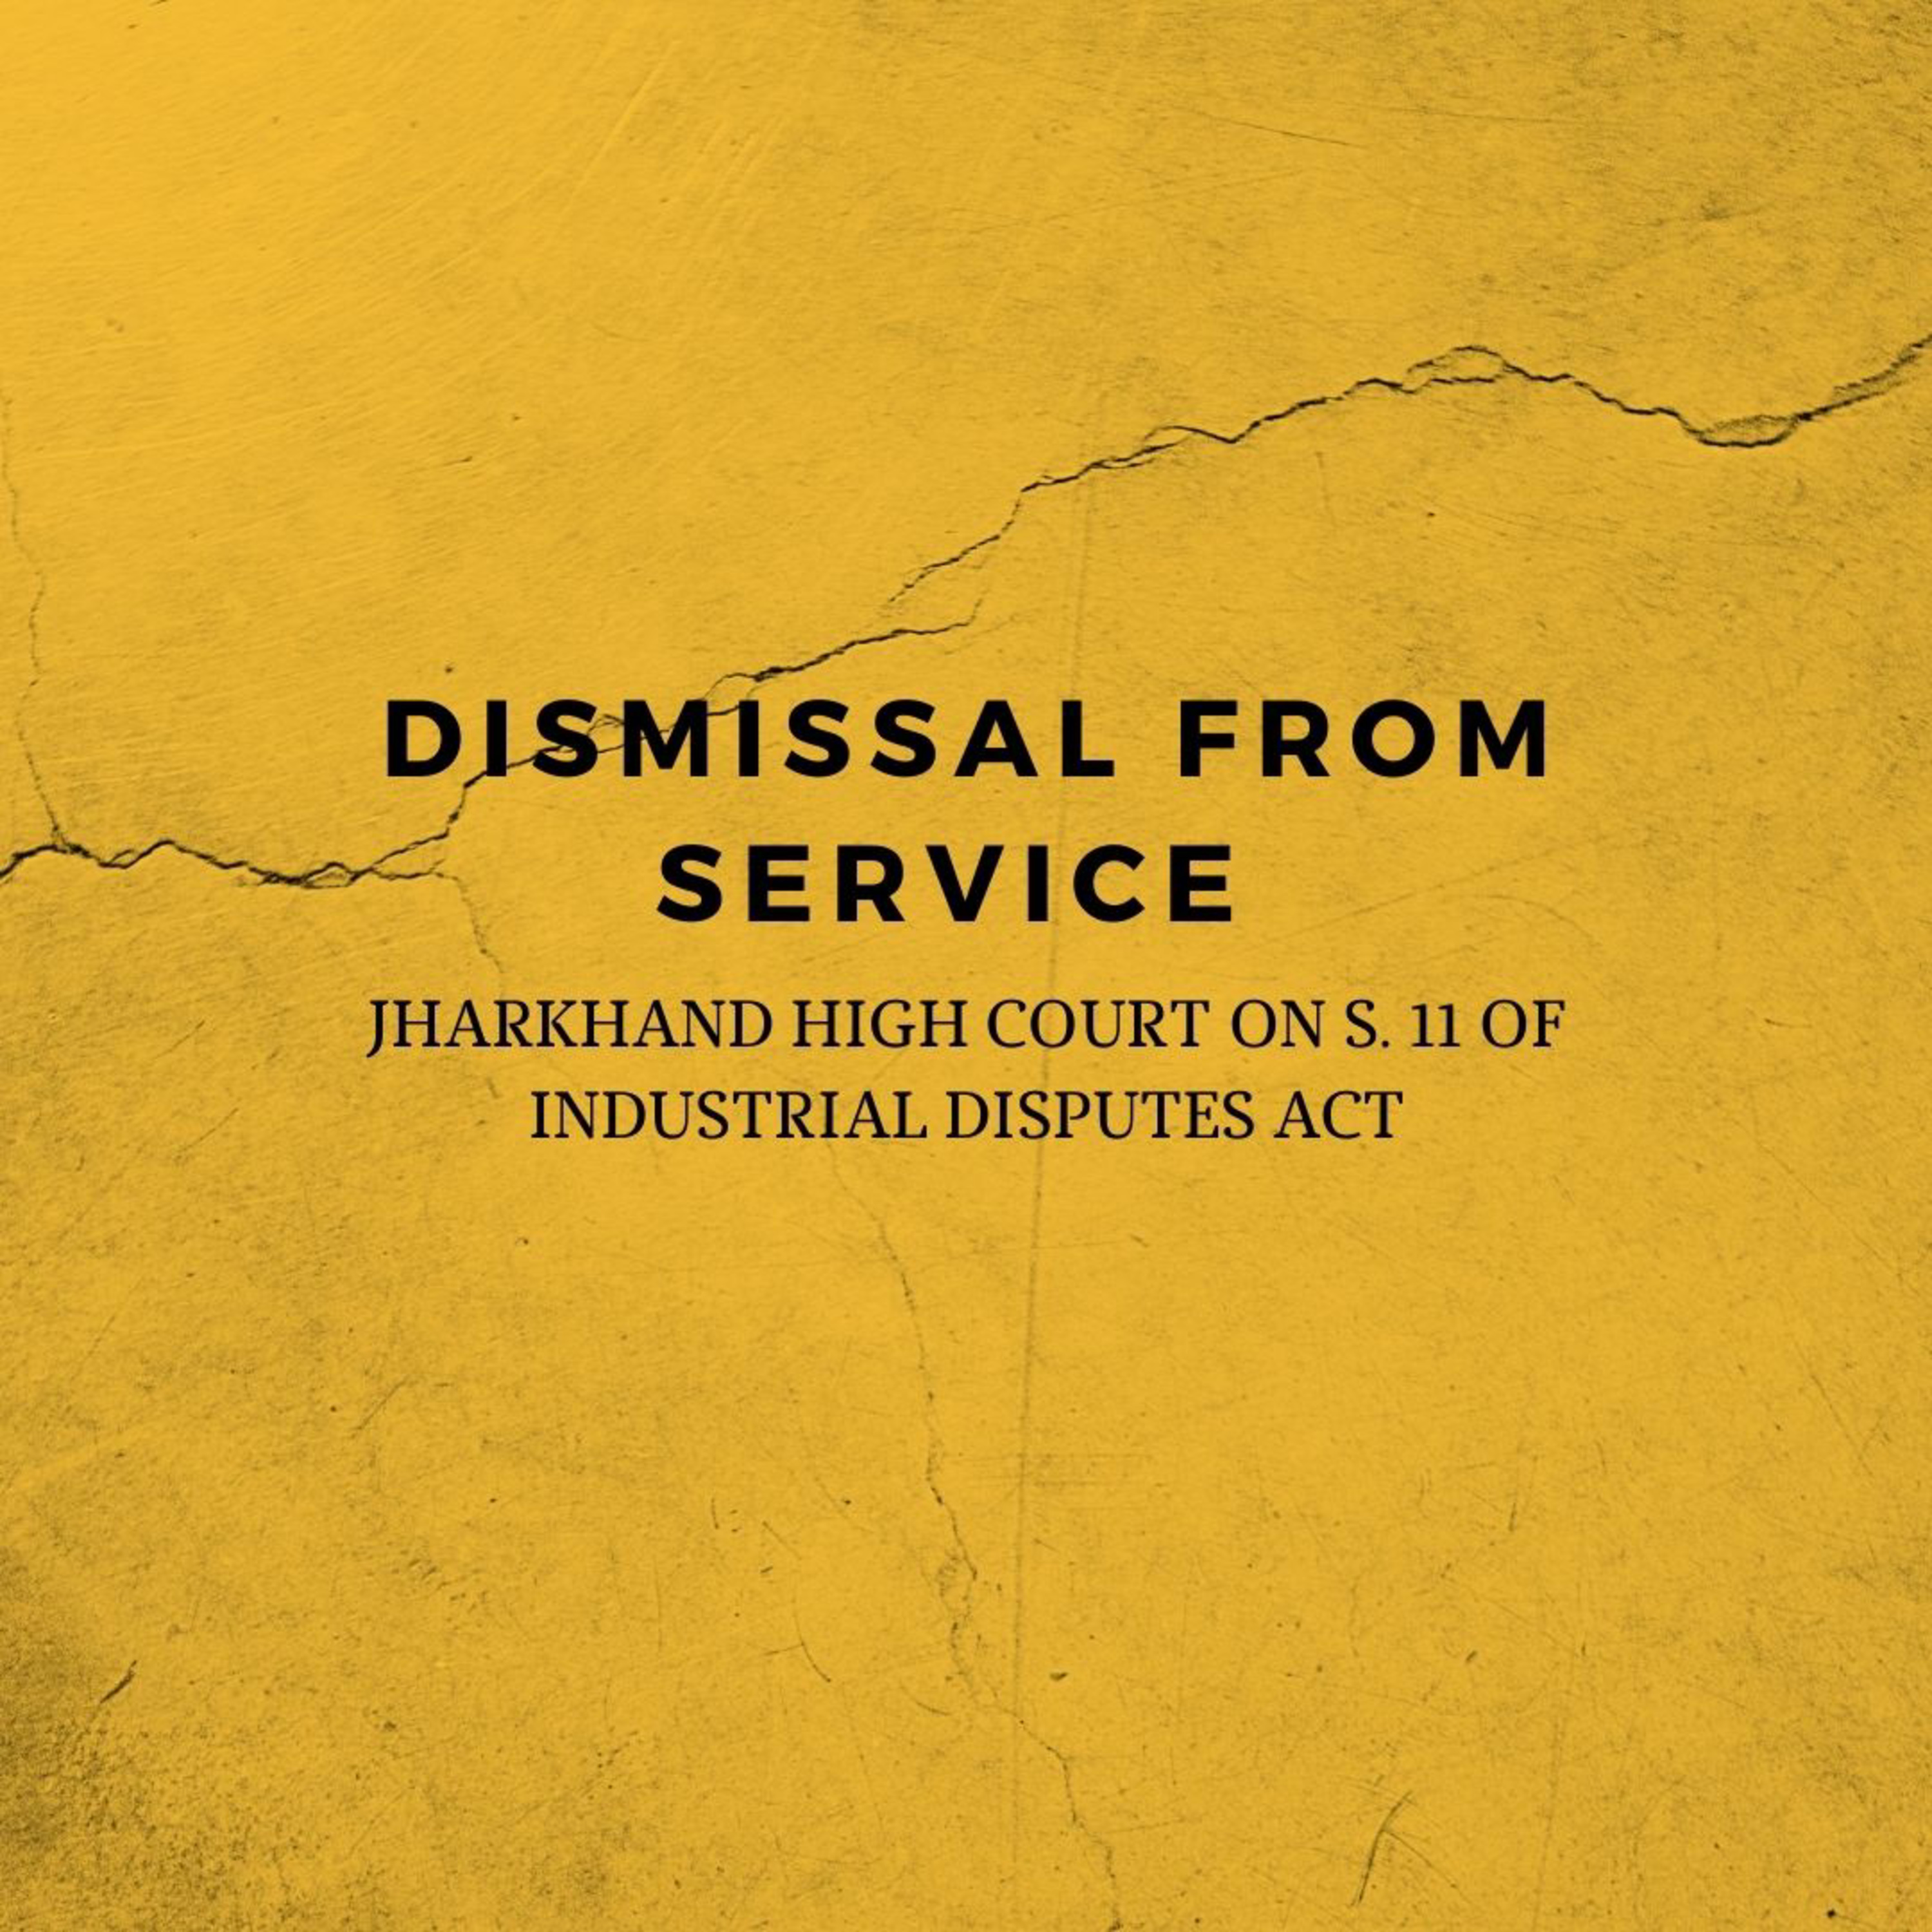 Dismissal from Service